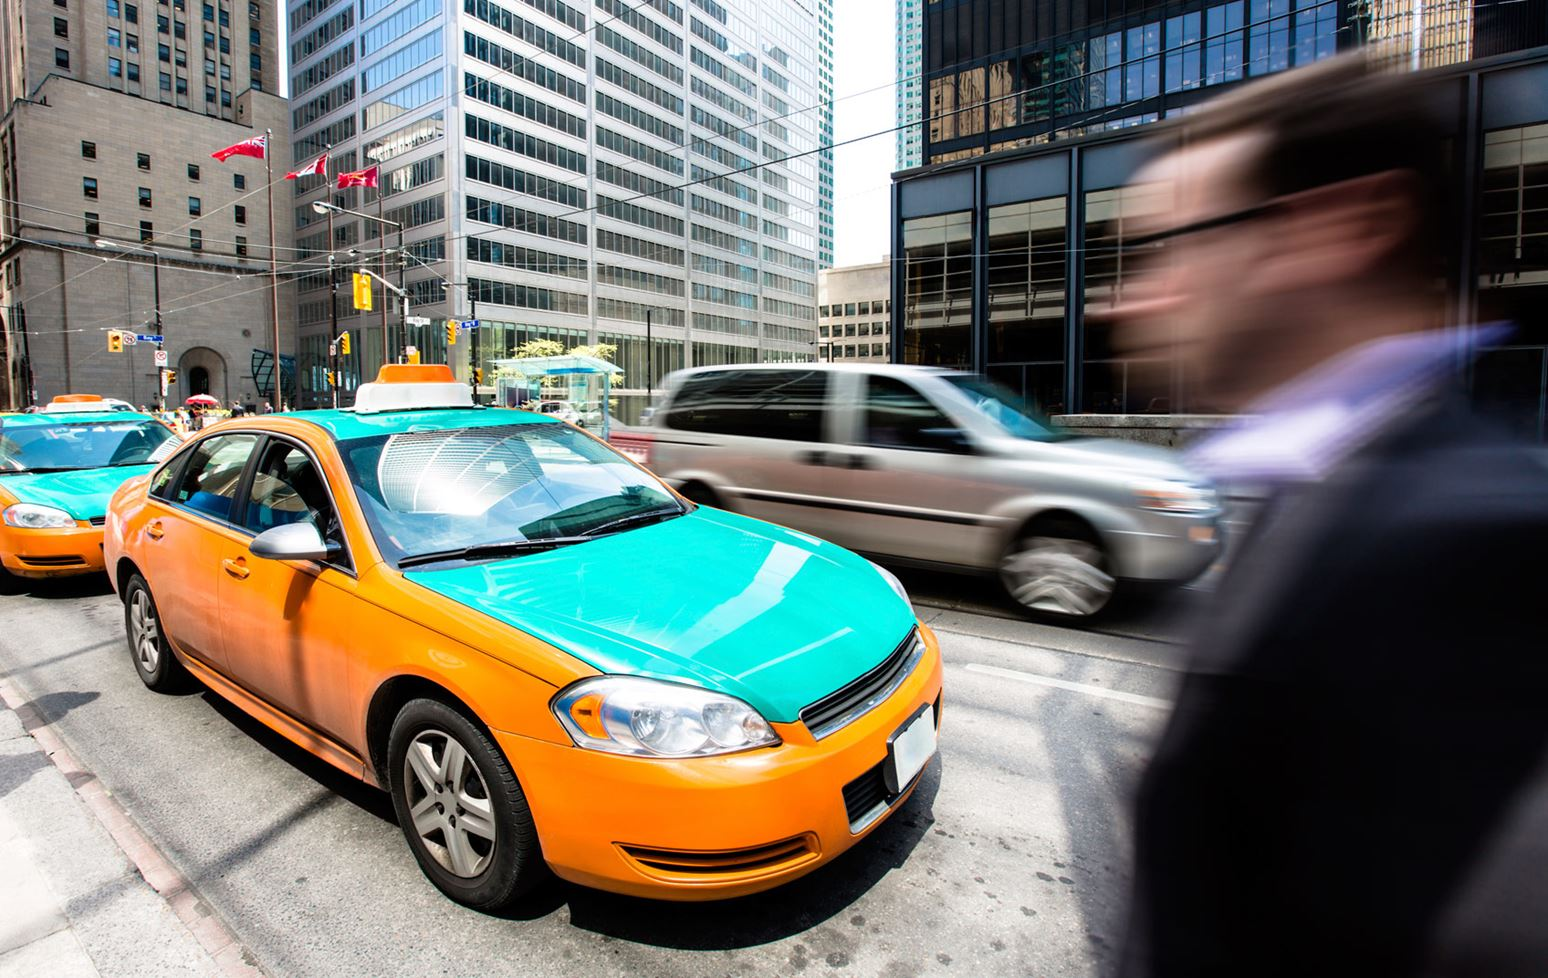 JP Vergne | Huge challenge to regulate Uber and taxis together